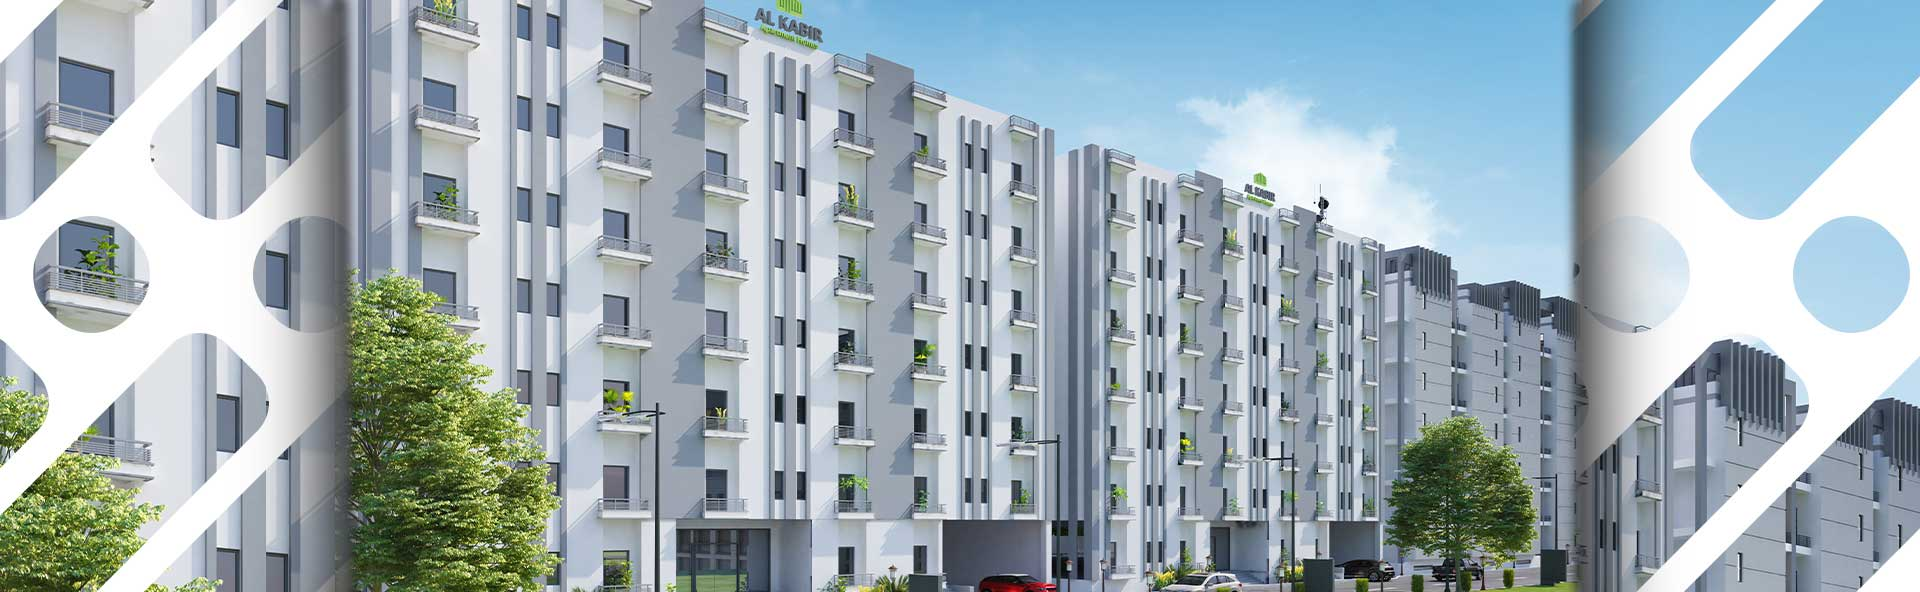 Home, Al-Kabir Town (Pvt) Ltd.